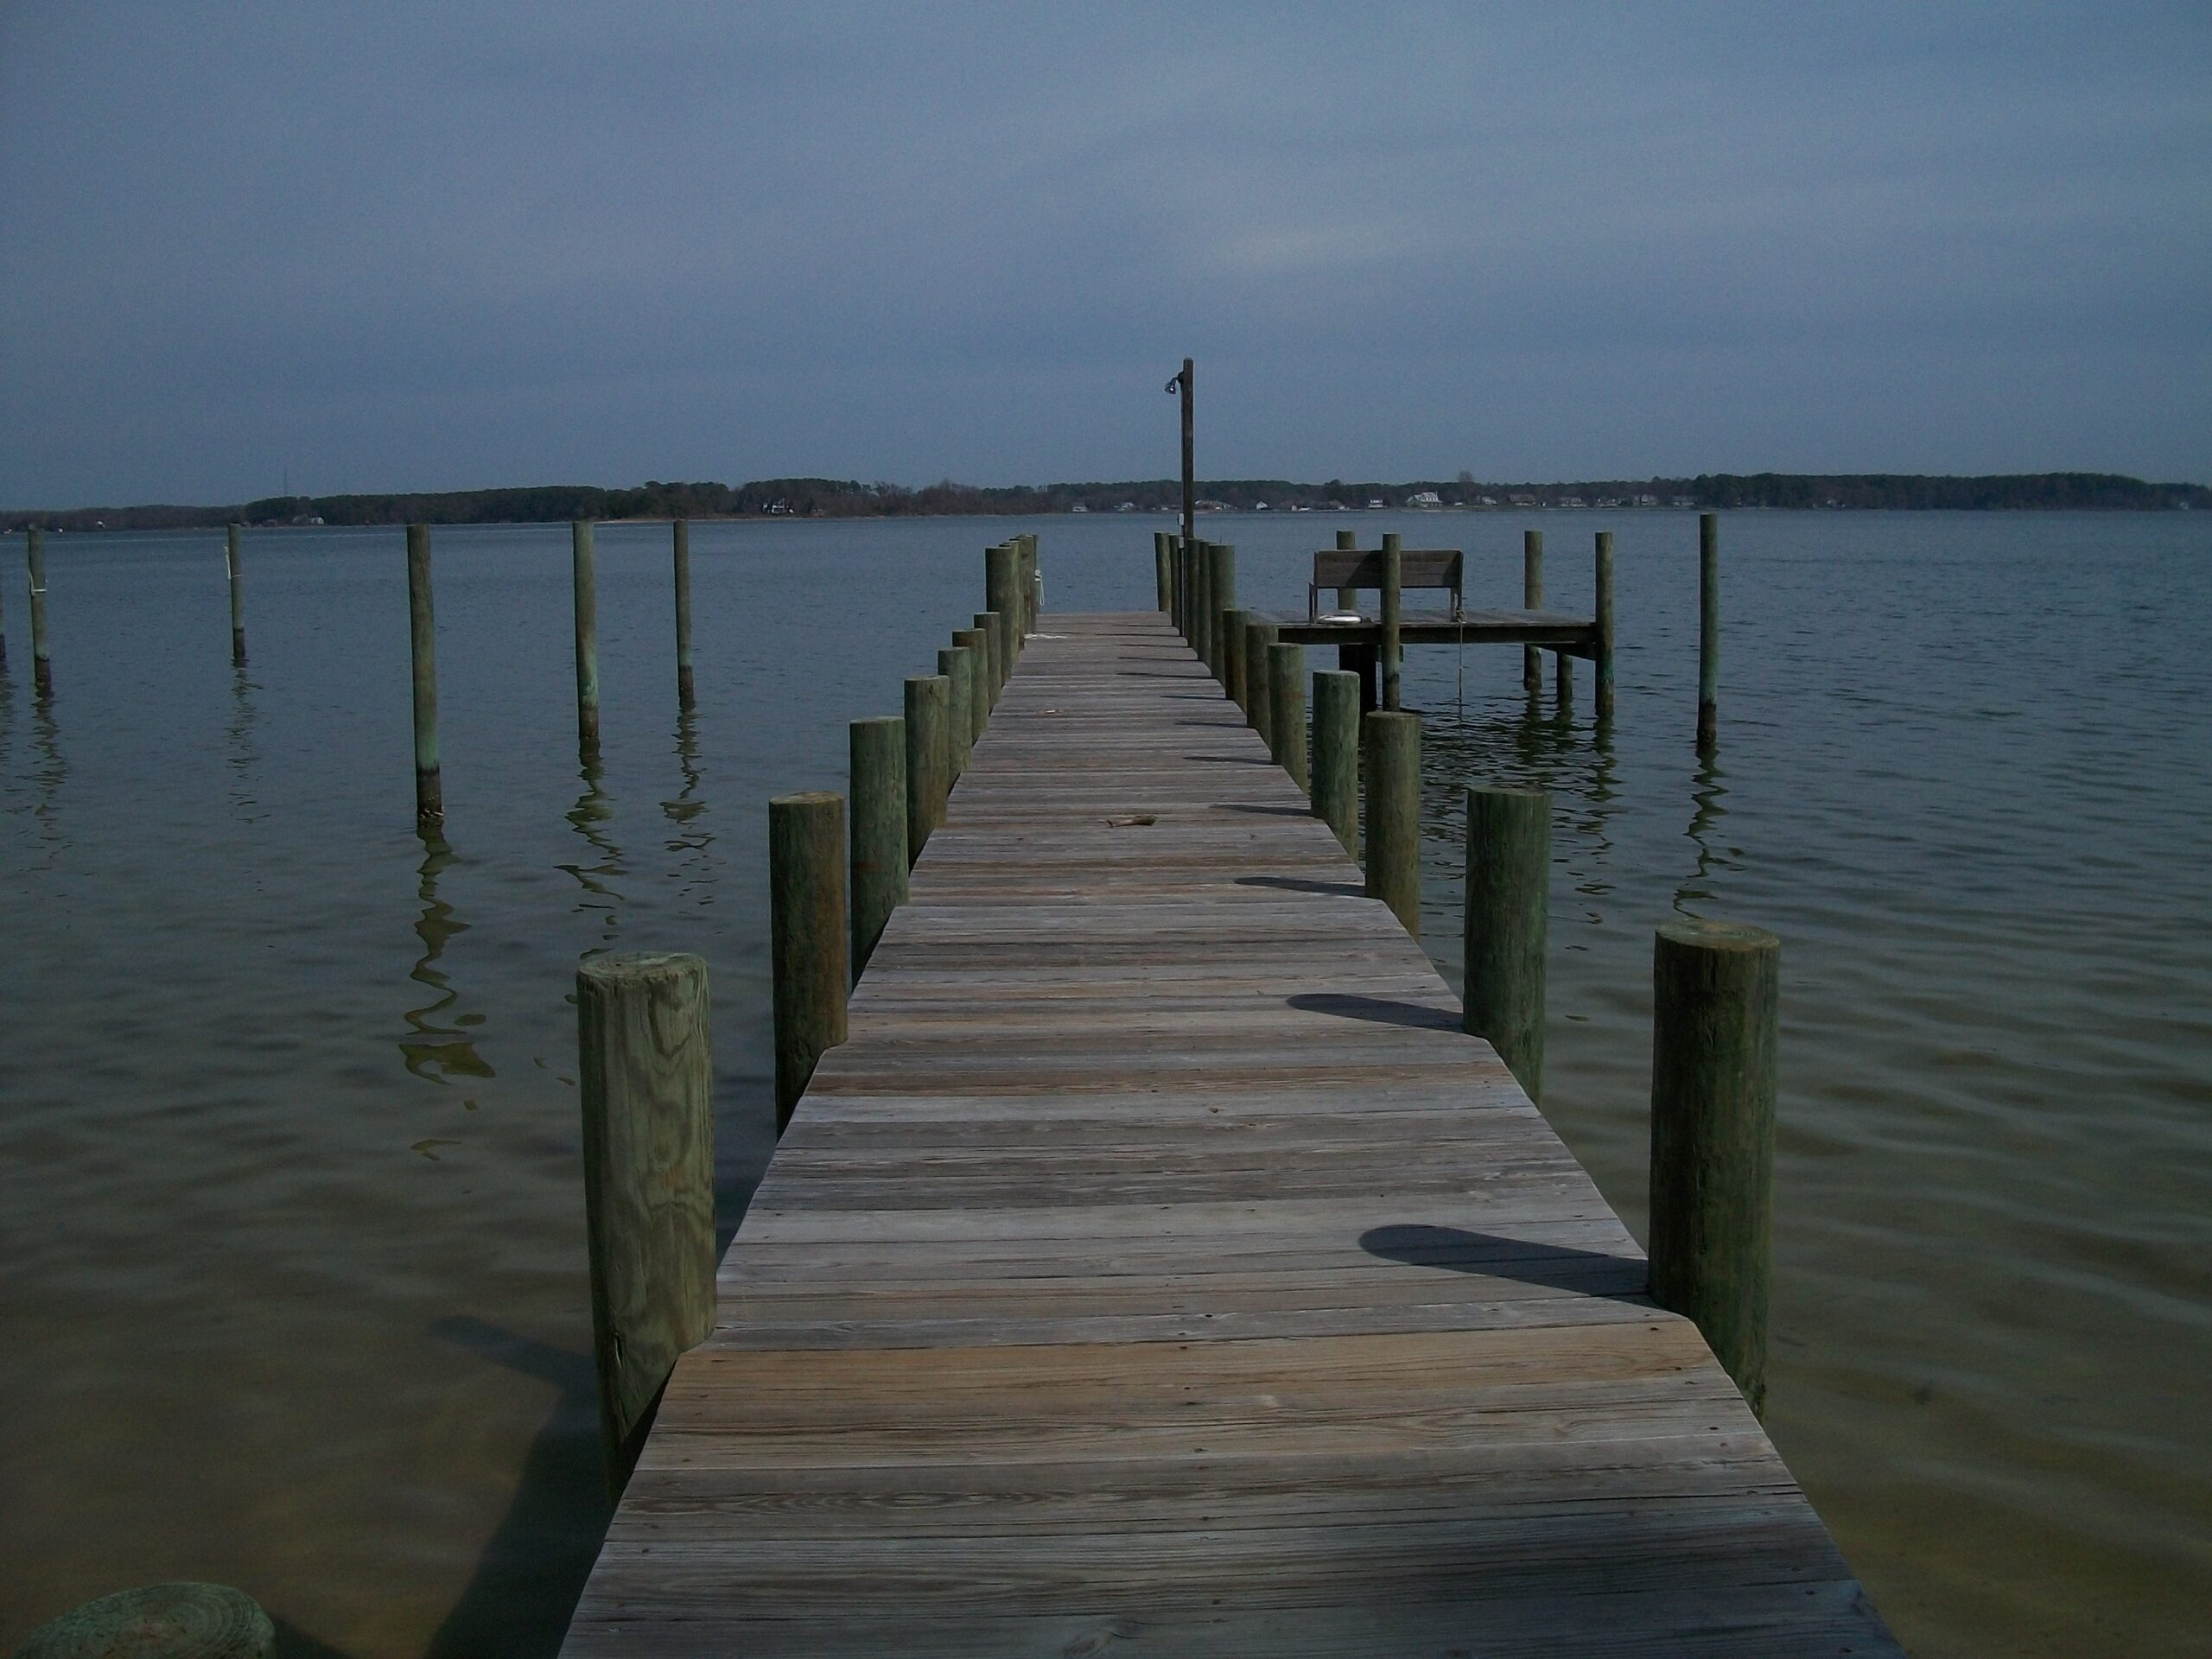 Docks_and_Accessories-6-scaled.jpg